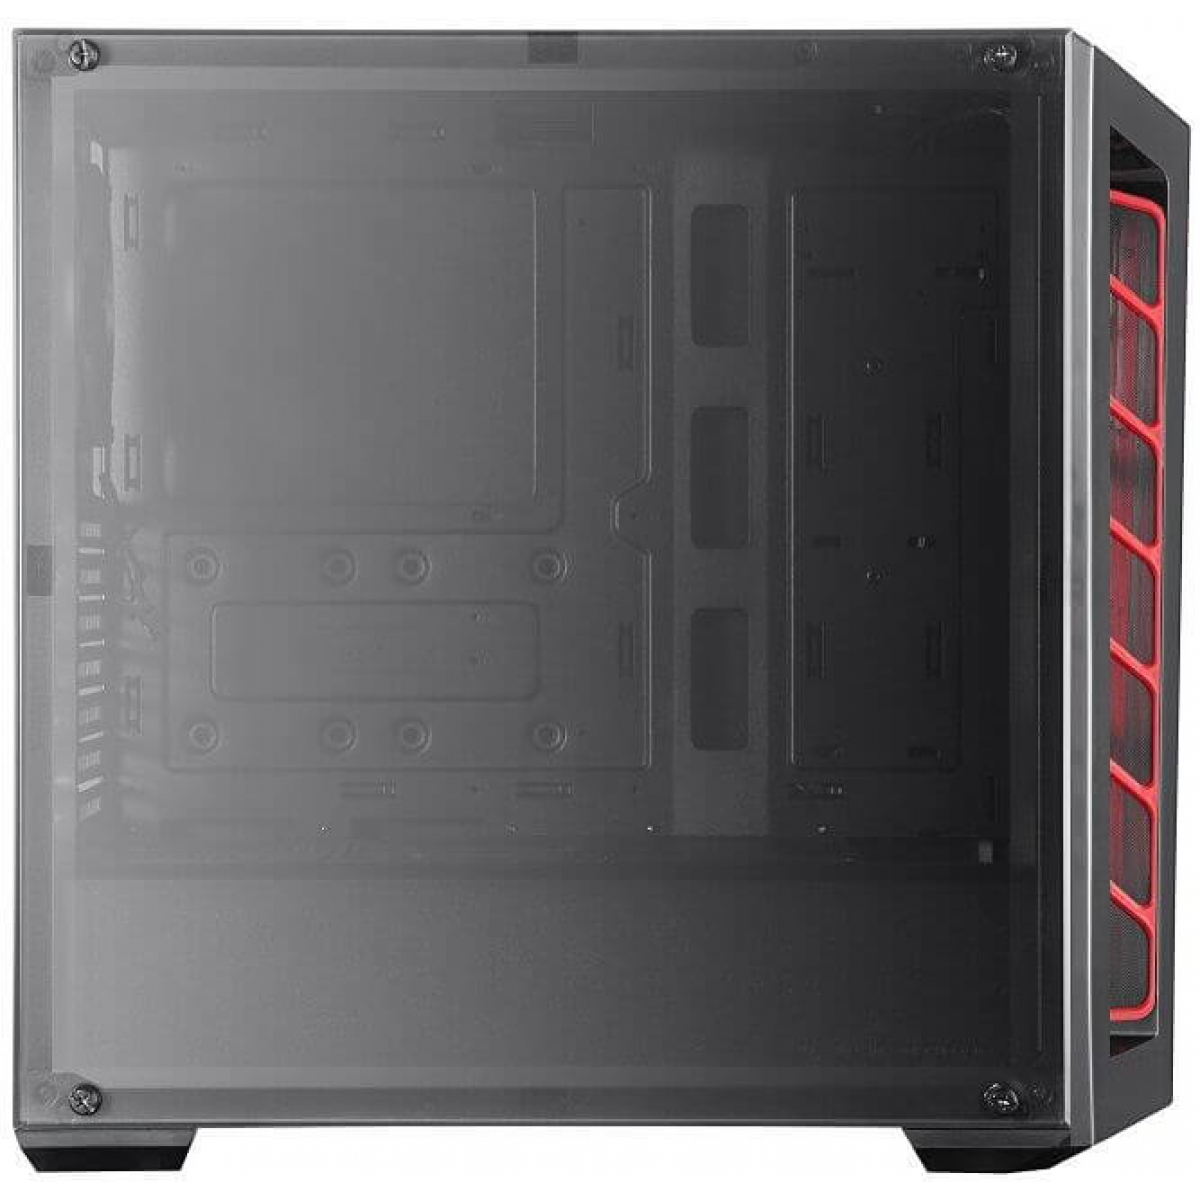 Gabinete Gamer Cooler Master Masterbox MB520, Mid Tower, Com 1 Fan, Black, S-Fonte, MCB-B520-KANN-S00-Red